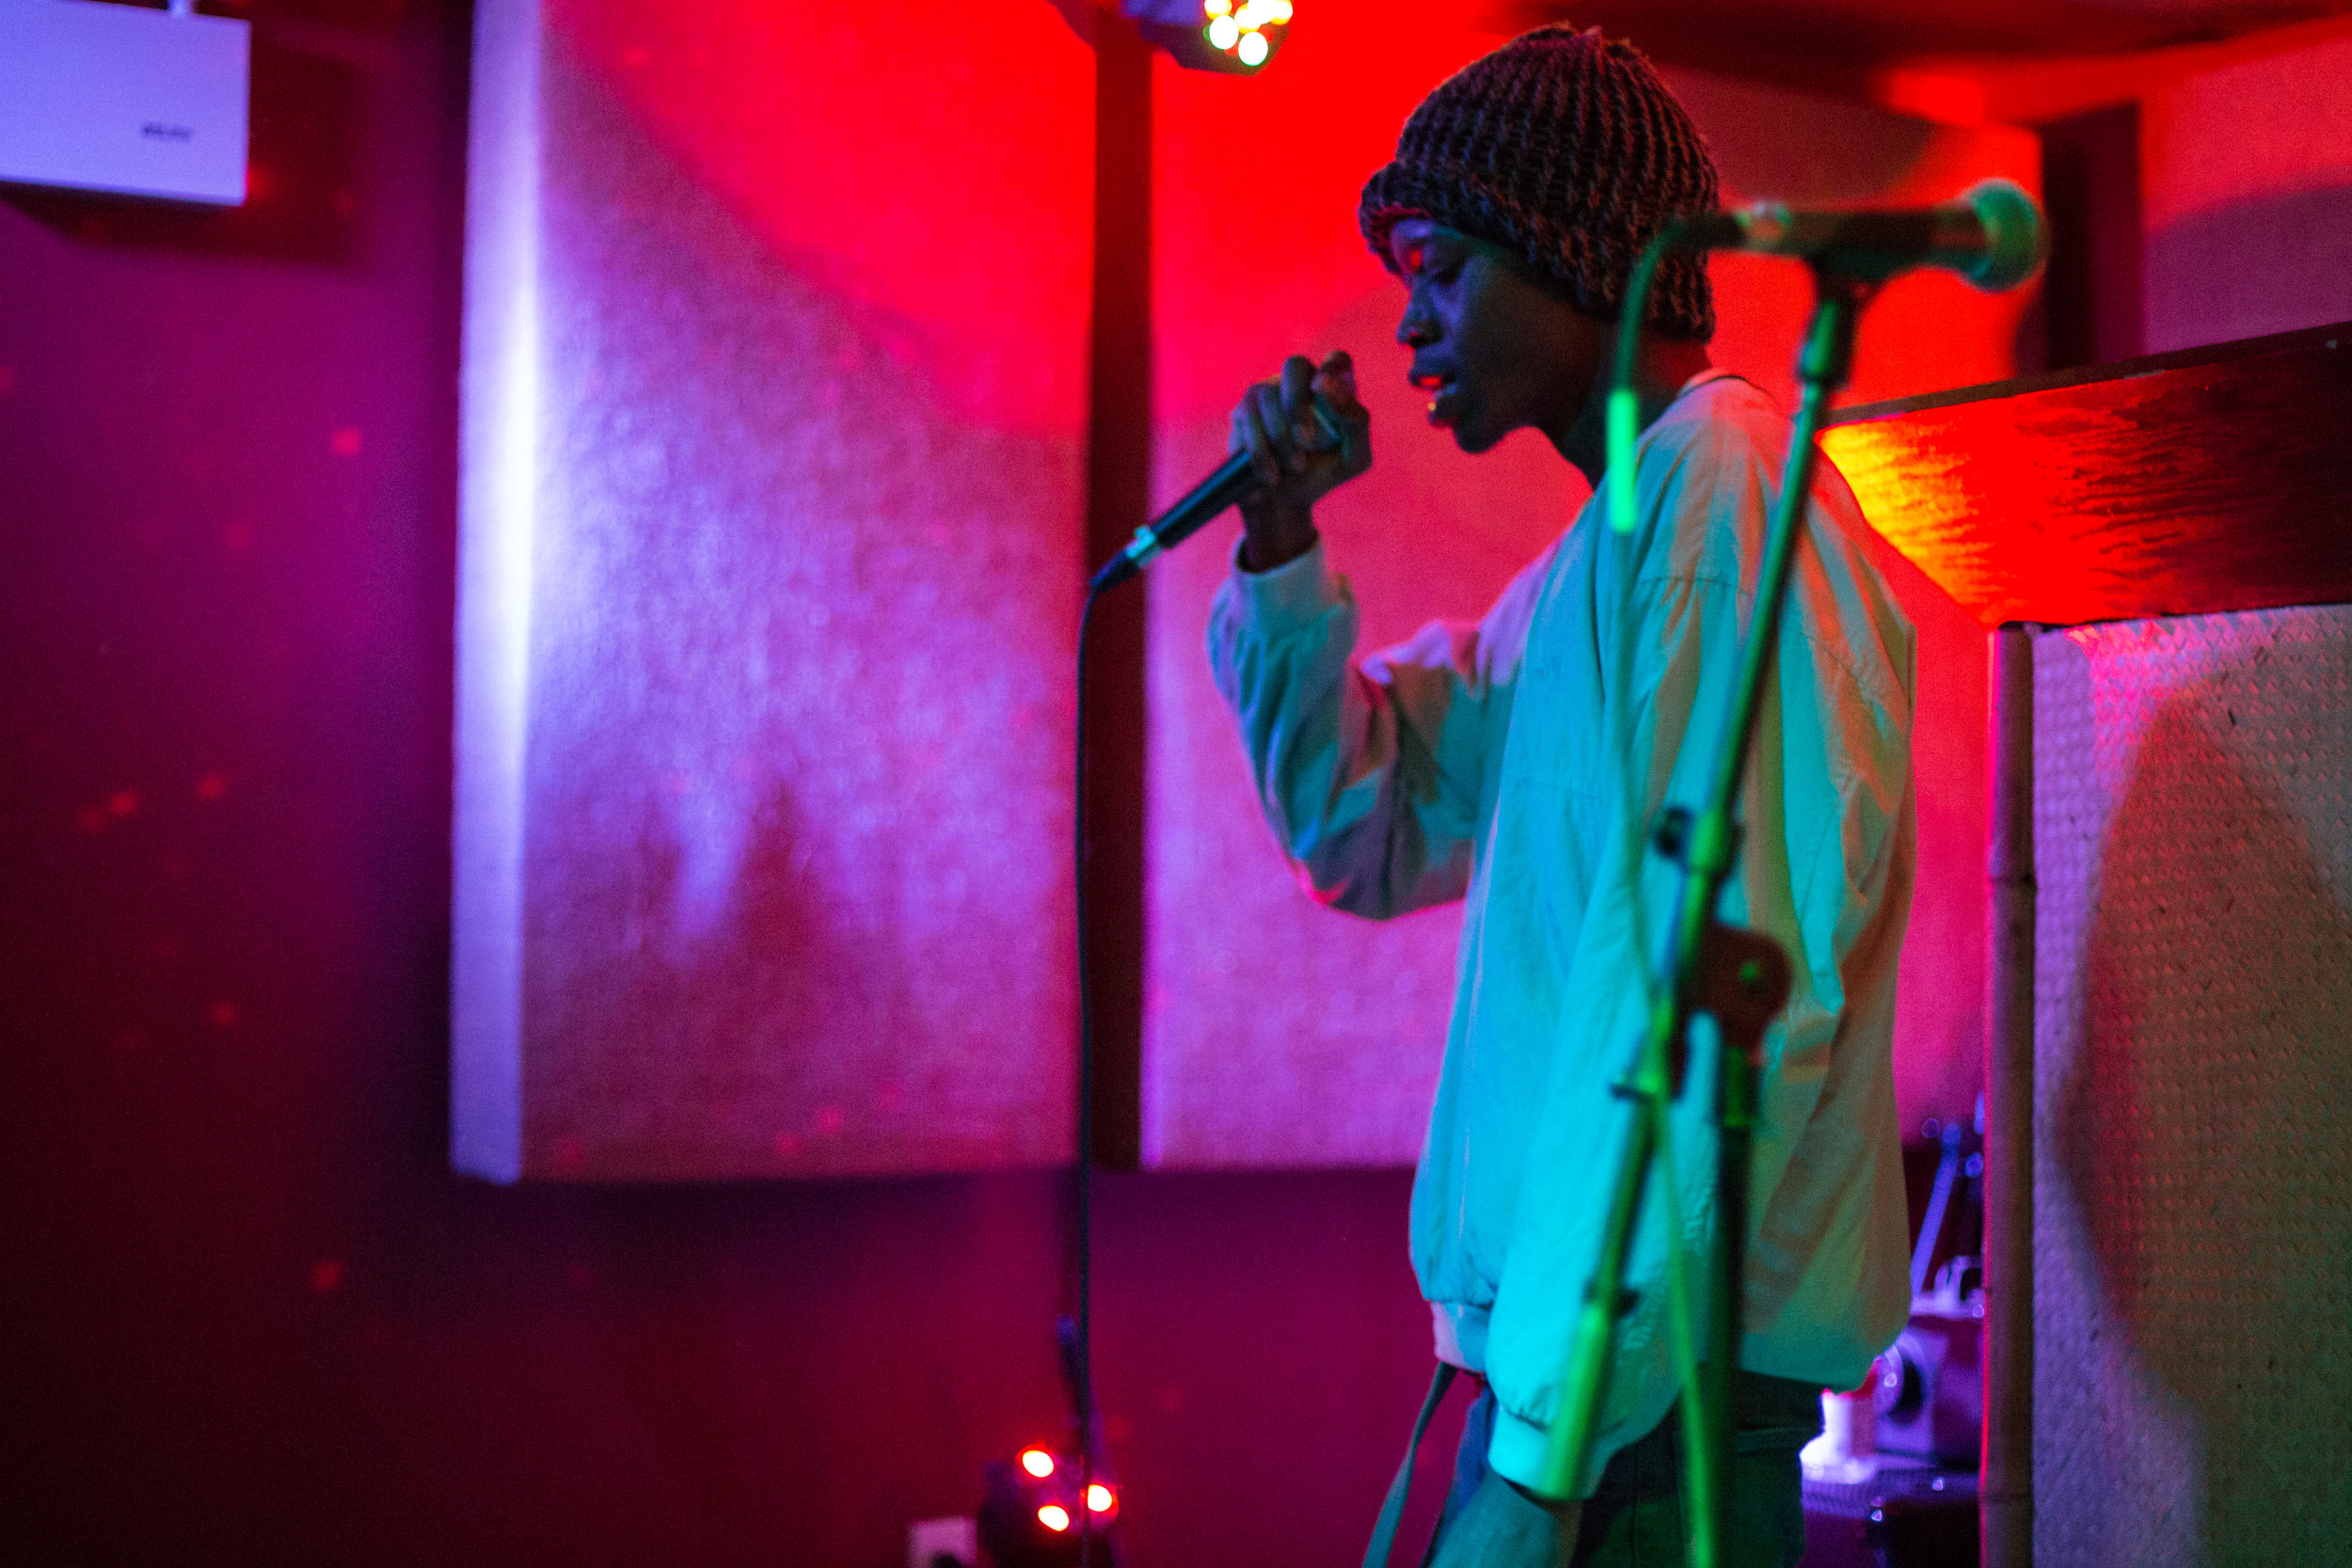 Deem Spencer showing his lyrical talent at The Safari Room. Photo courtesy of Sergio Carrasco.